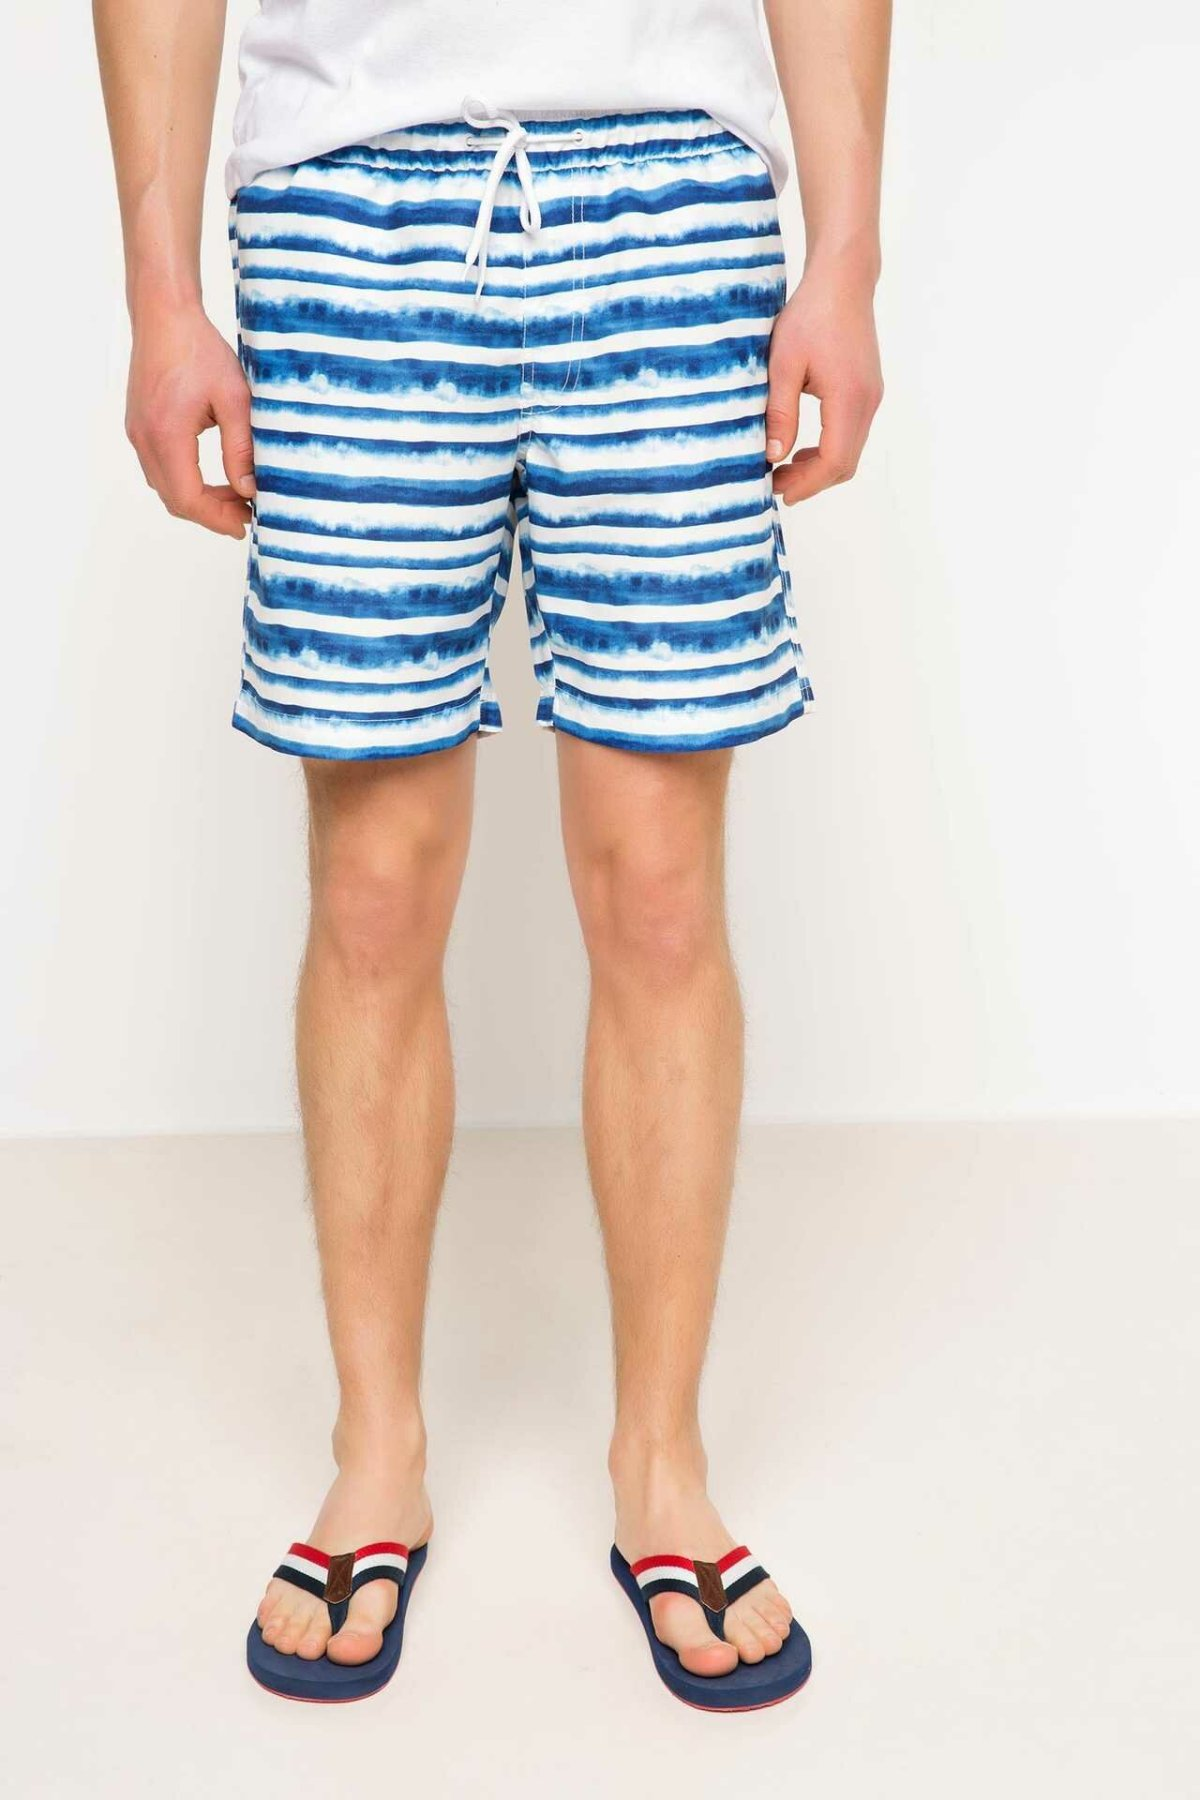 DeFacto Man Woven Swimming Short Men Casual Lace-up Blue White Striped Casual Shorts Male Sports Shorts-G7293AZ17HS